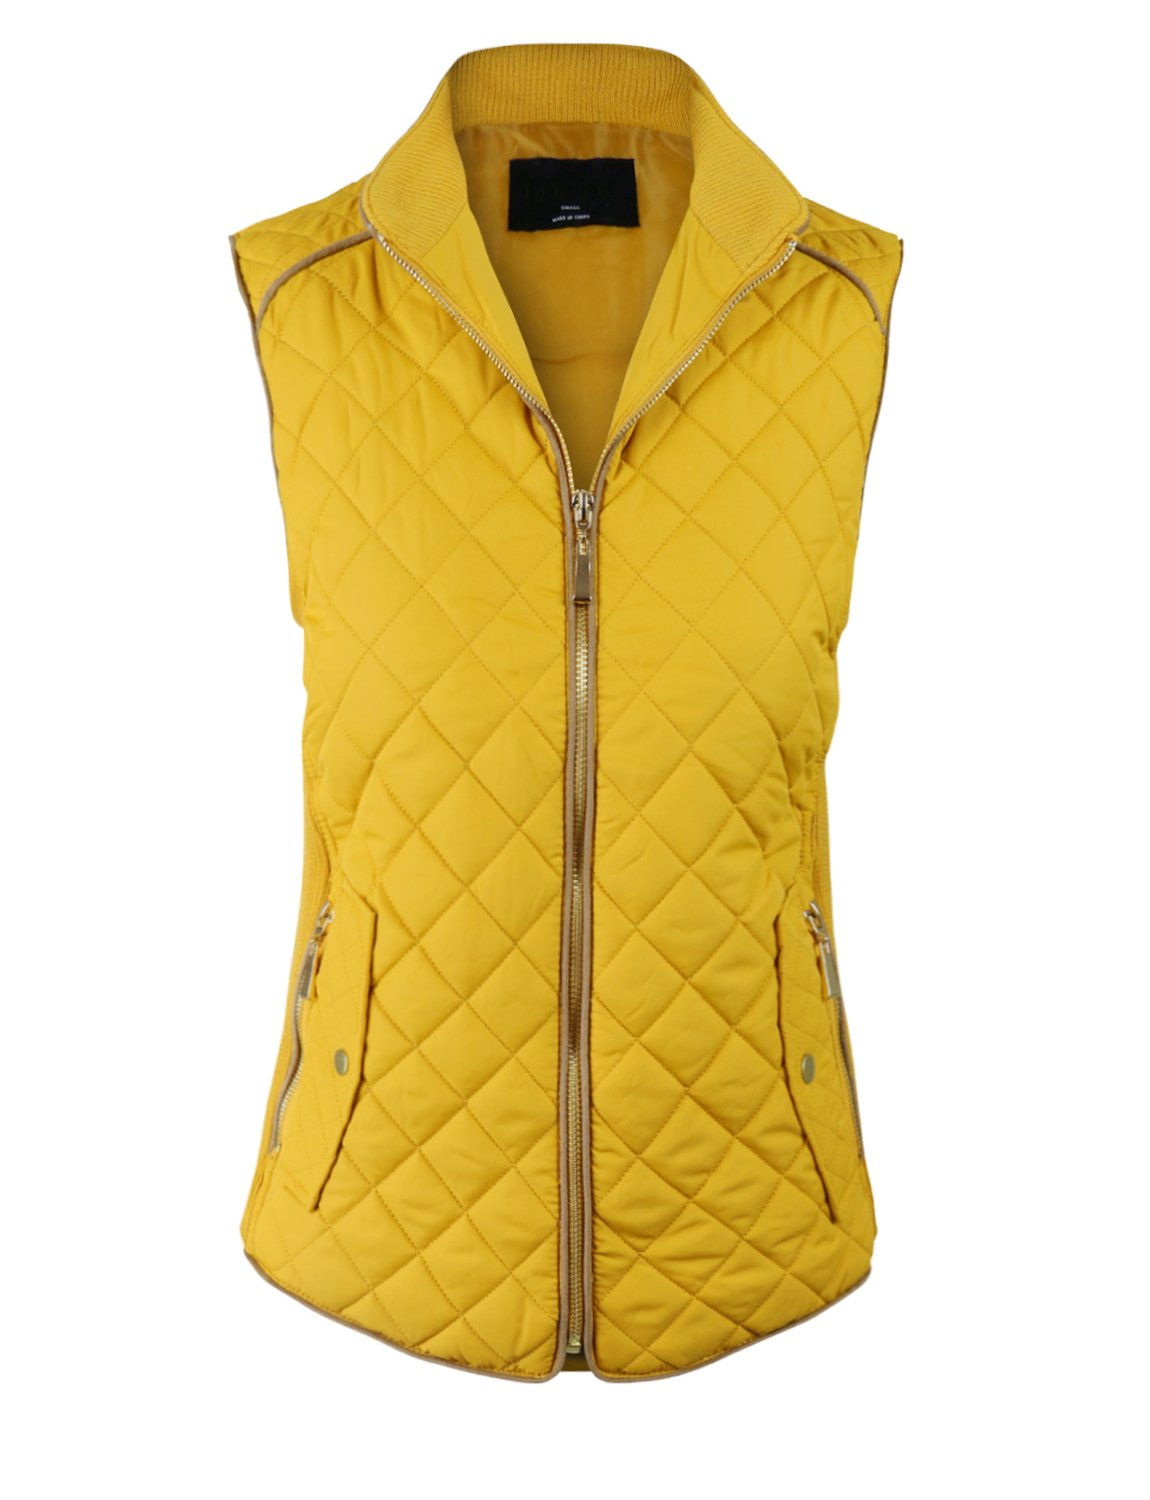 makeitmint Women's Basic Solid Quilted Padding Jacket Vest w/ Pockets Small YJV0002_Mustard